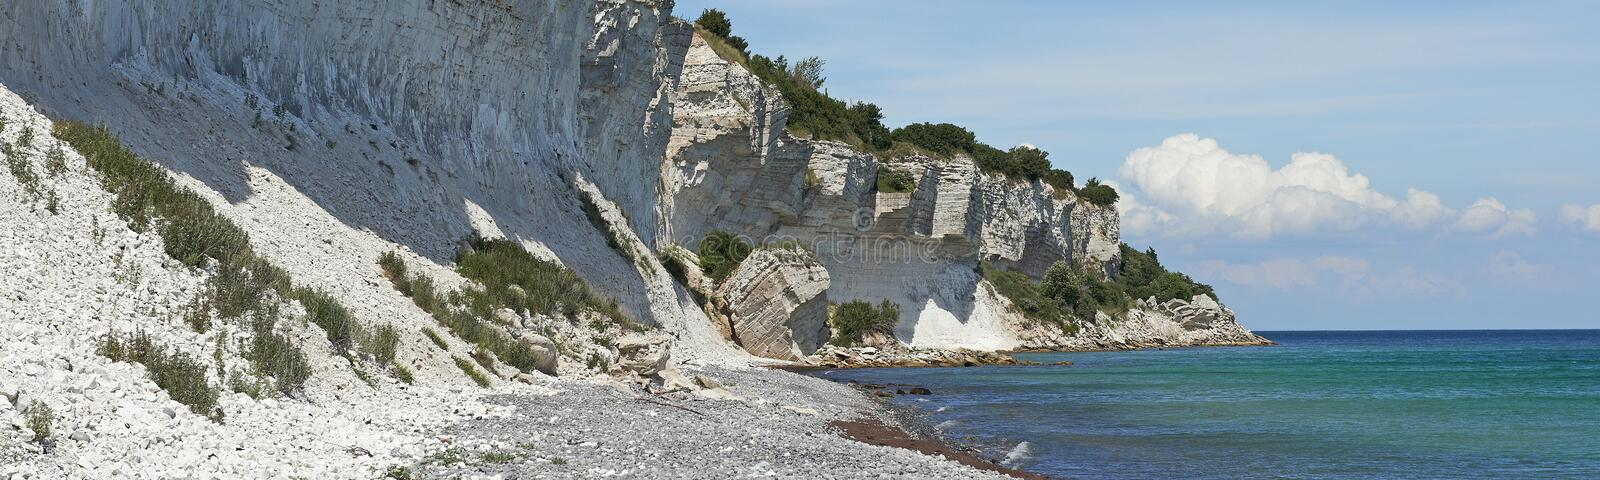 Stevns Cliff, Denmark. Panorama image of the beautiful stevns cliff in Denmark stock photos